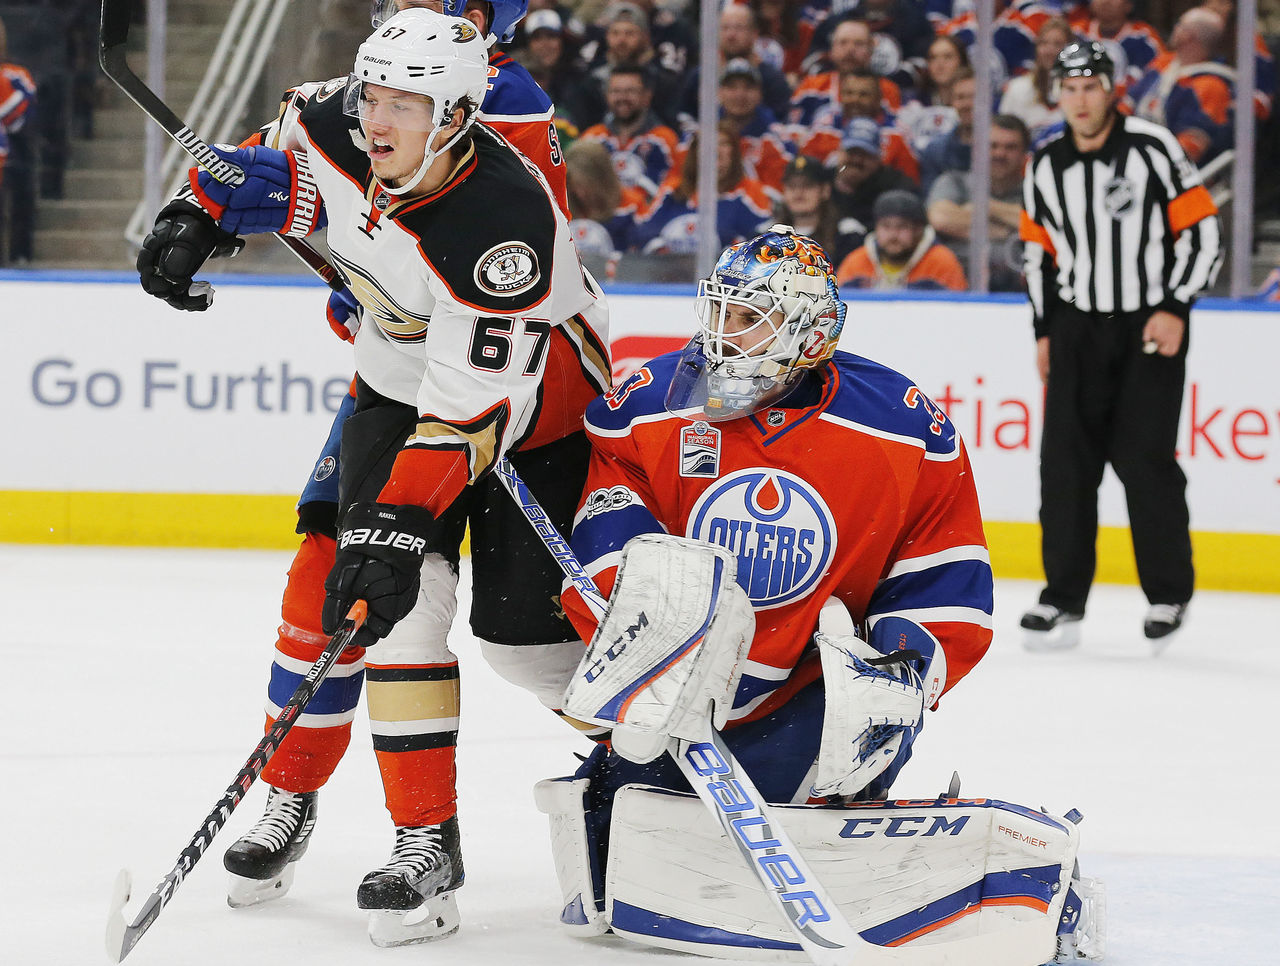 Cropped_2017-04-02t035931z_1029180932_nocid_rtrmadp_3_nhl-anaheim-ducks-at-edmonton-oilers__1_